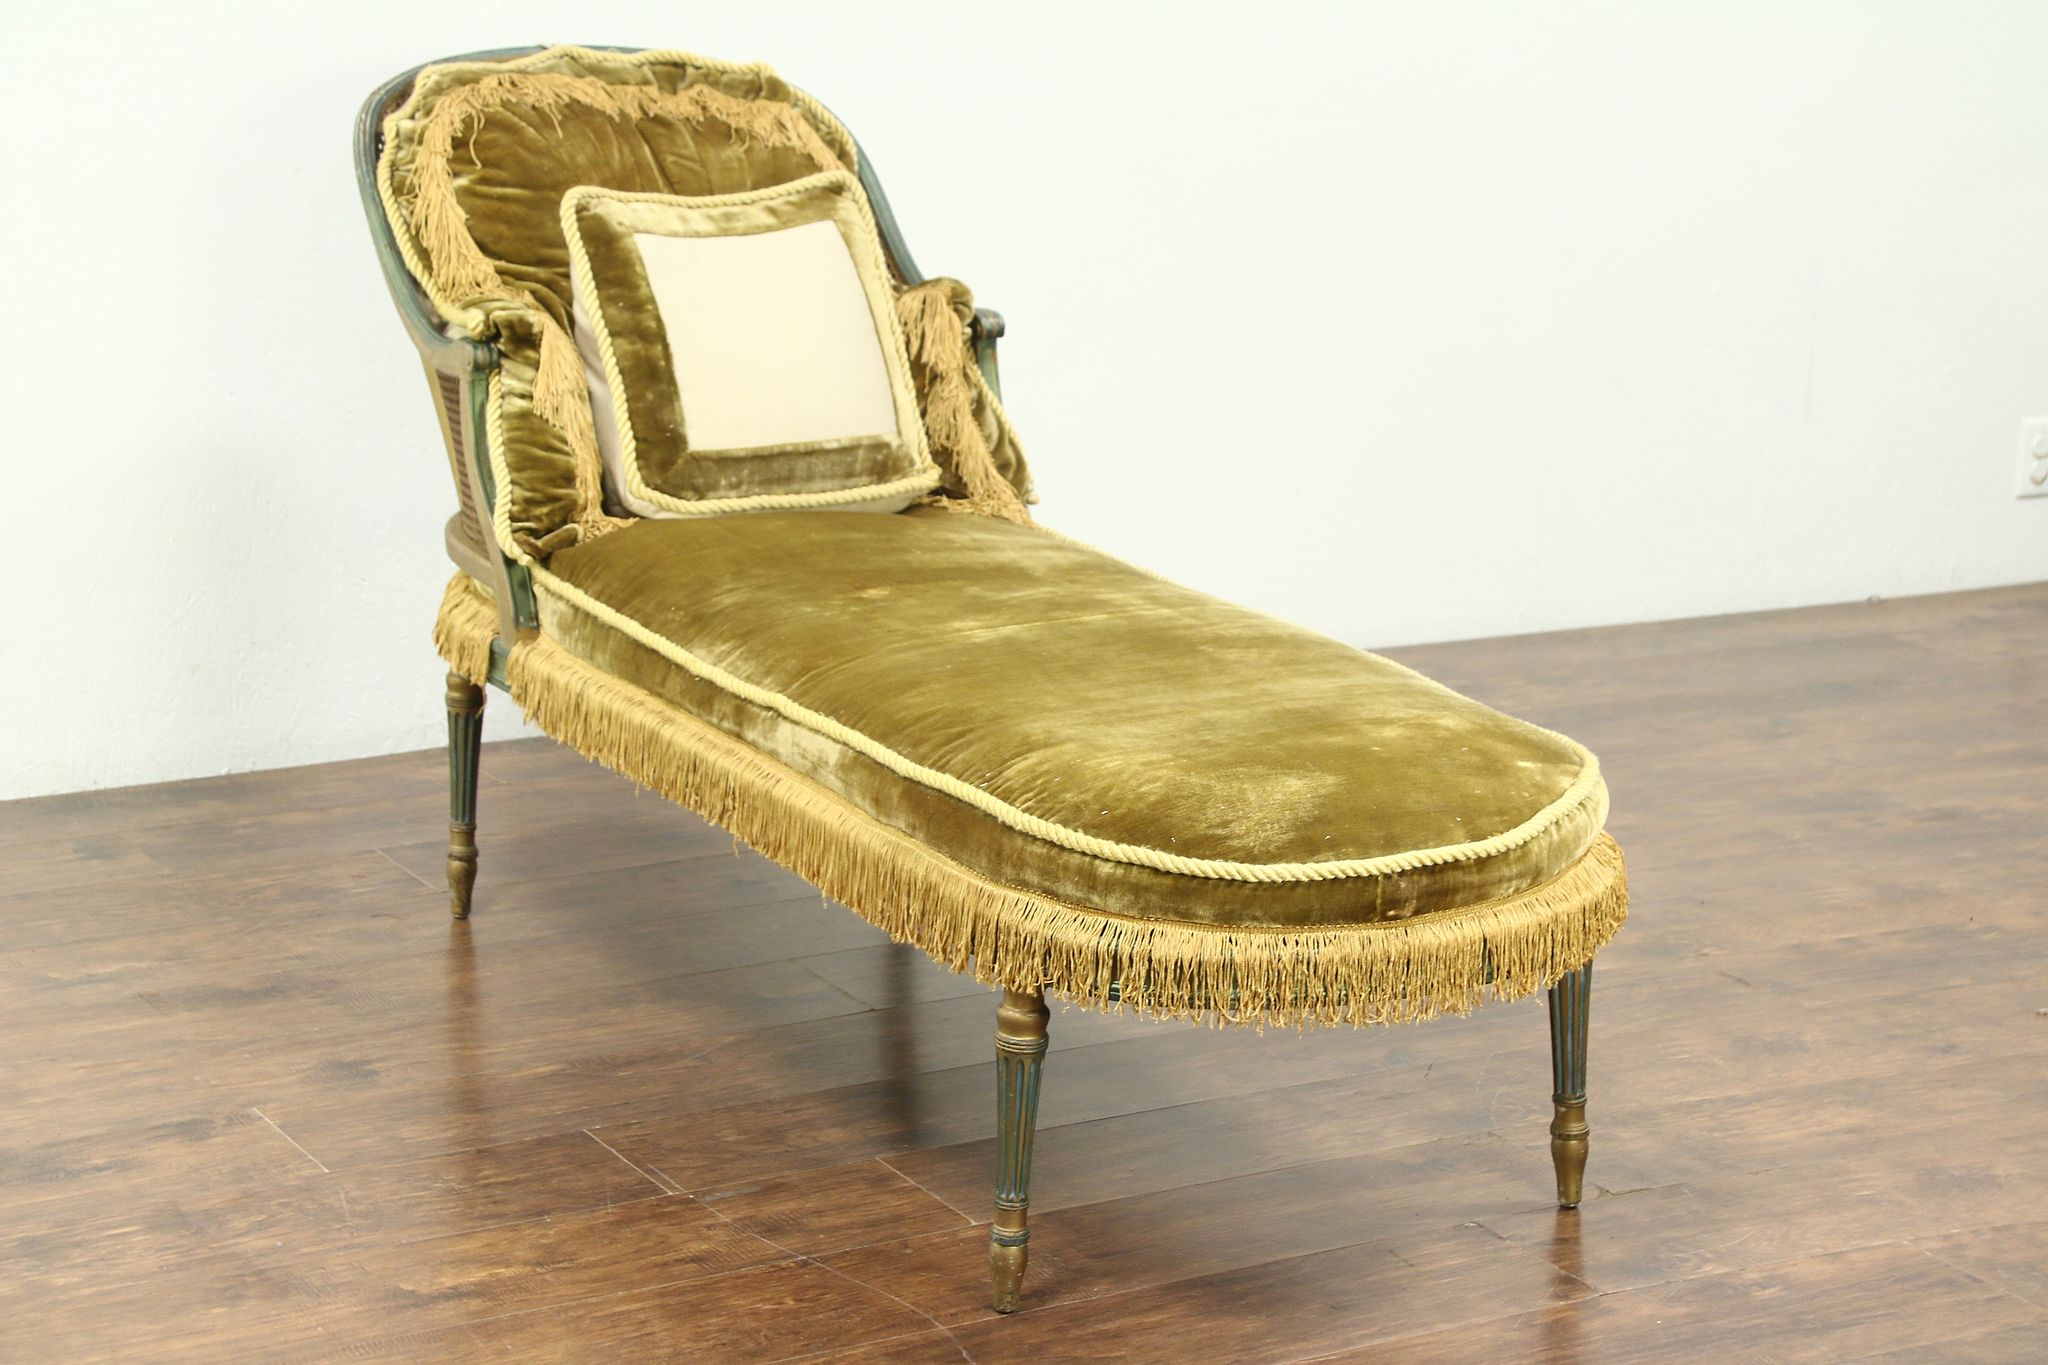 Chaise Style Chaise Lounge Sofa 1920 S Antique Louis Xvi Style Caned Seat